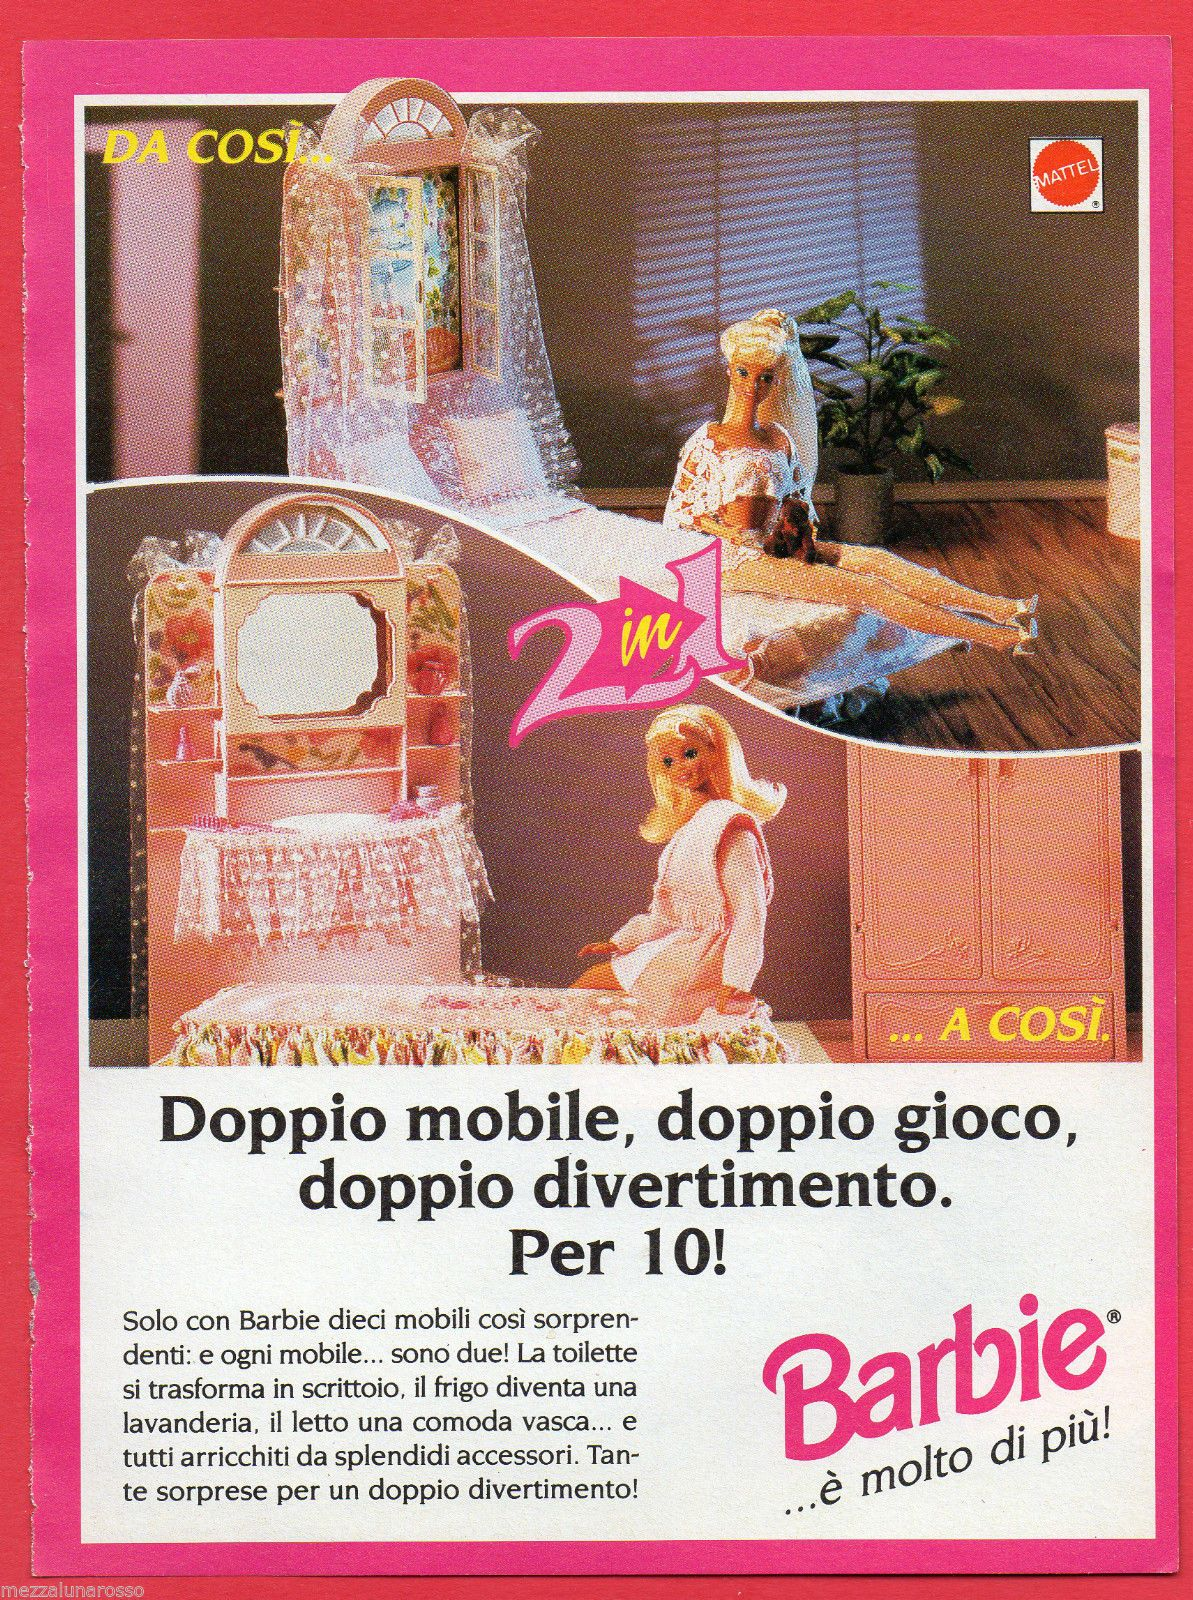 Barbie Bedroom In A Box: 1994 Barbie Foreign Ad - Bedroom / Bathroom